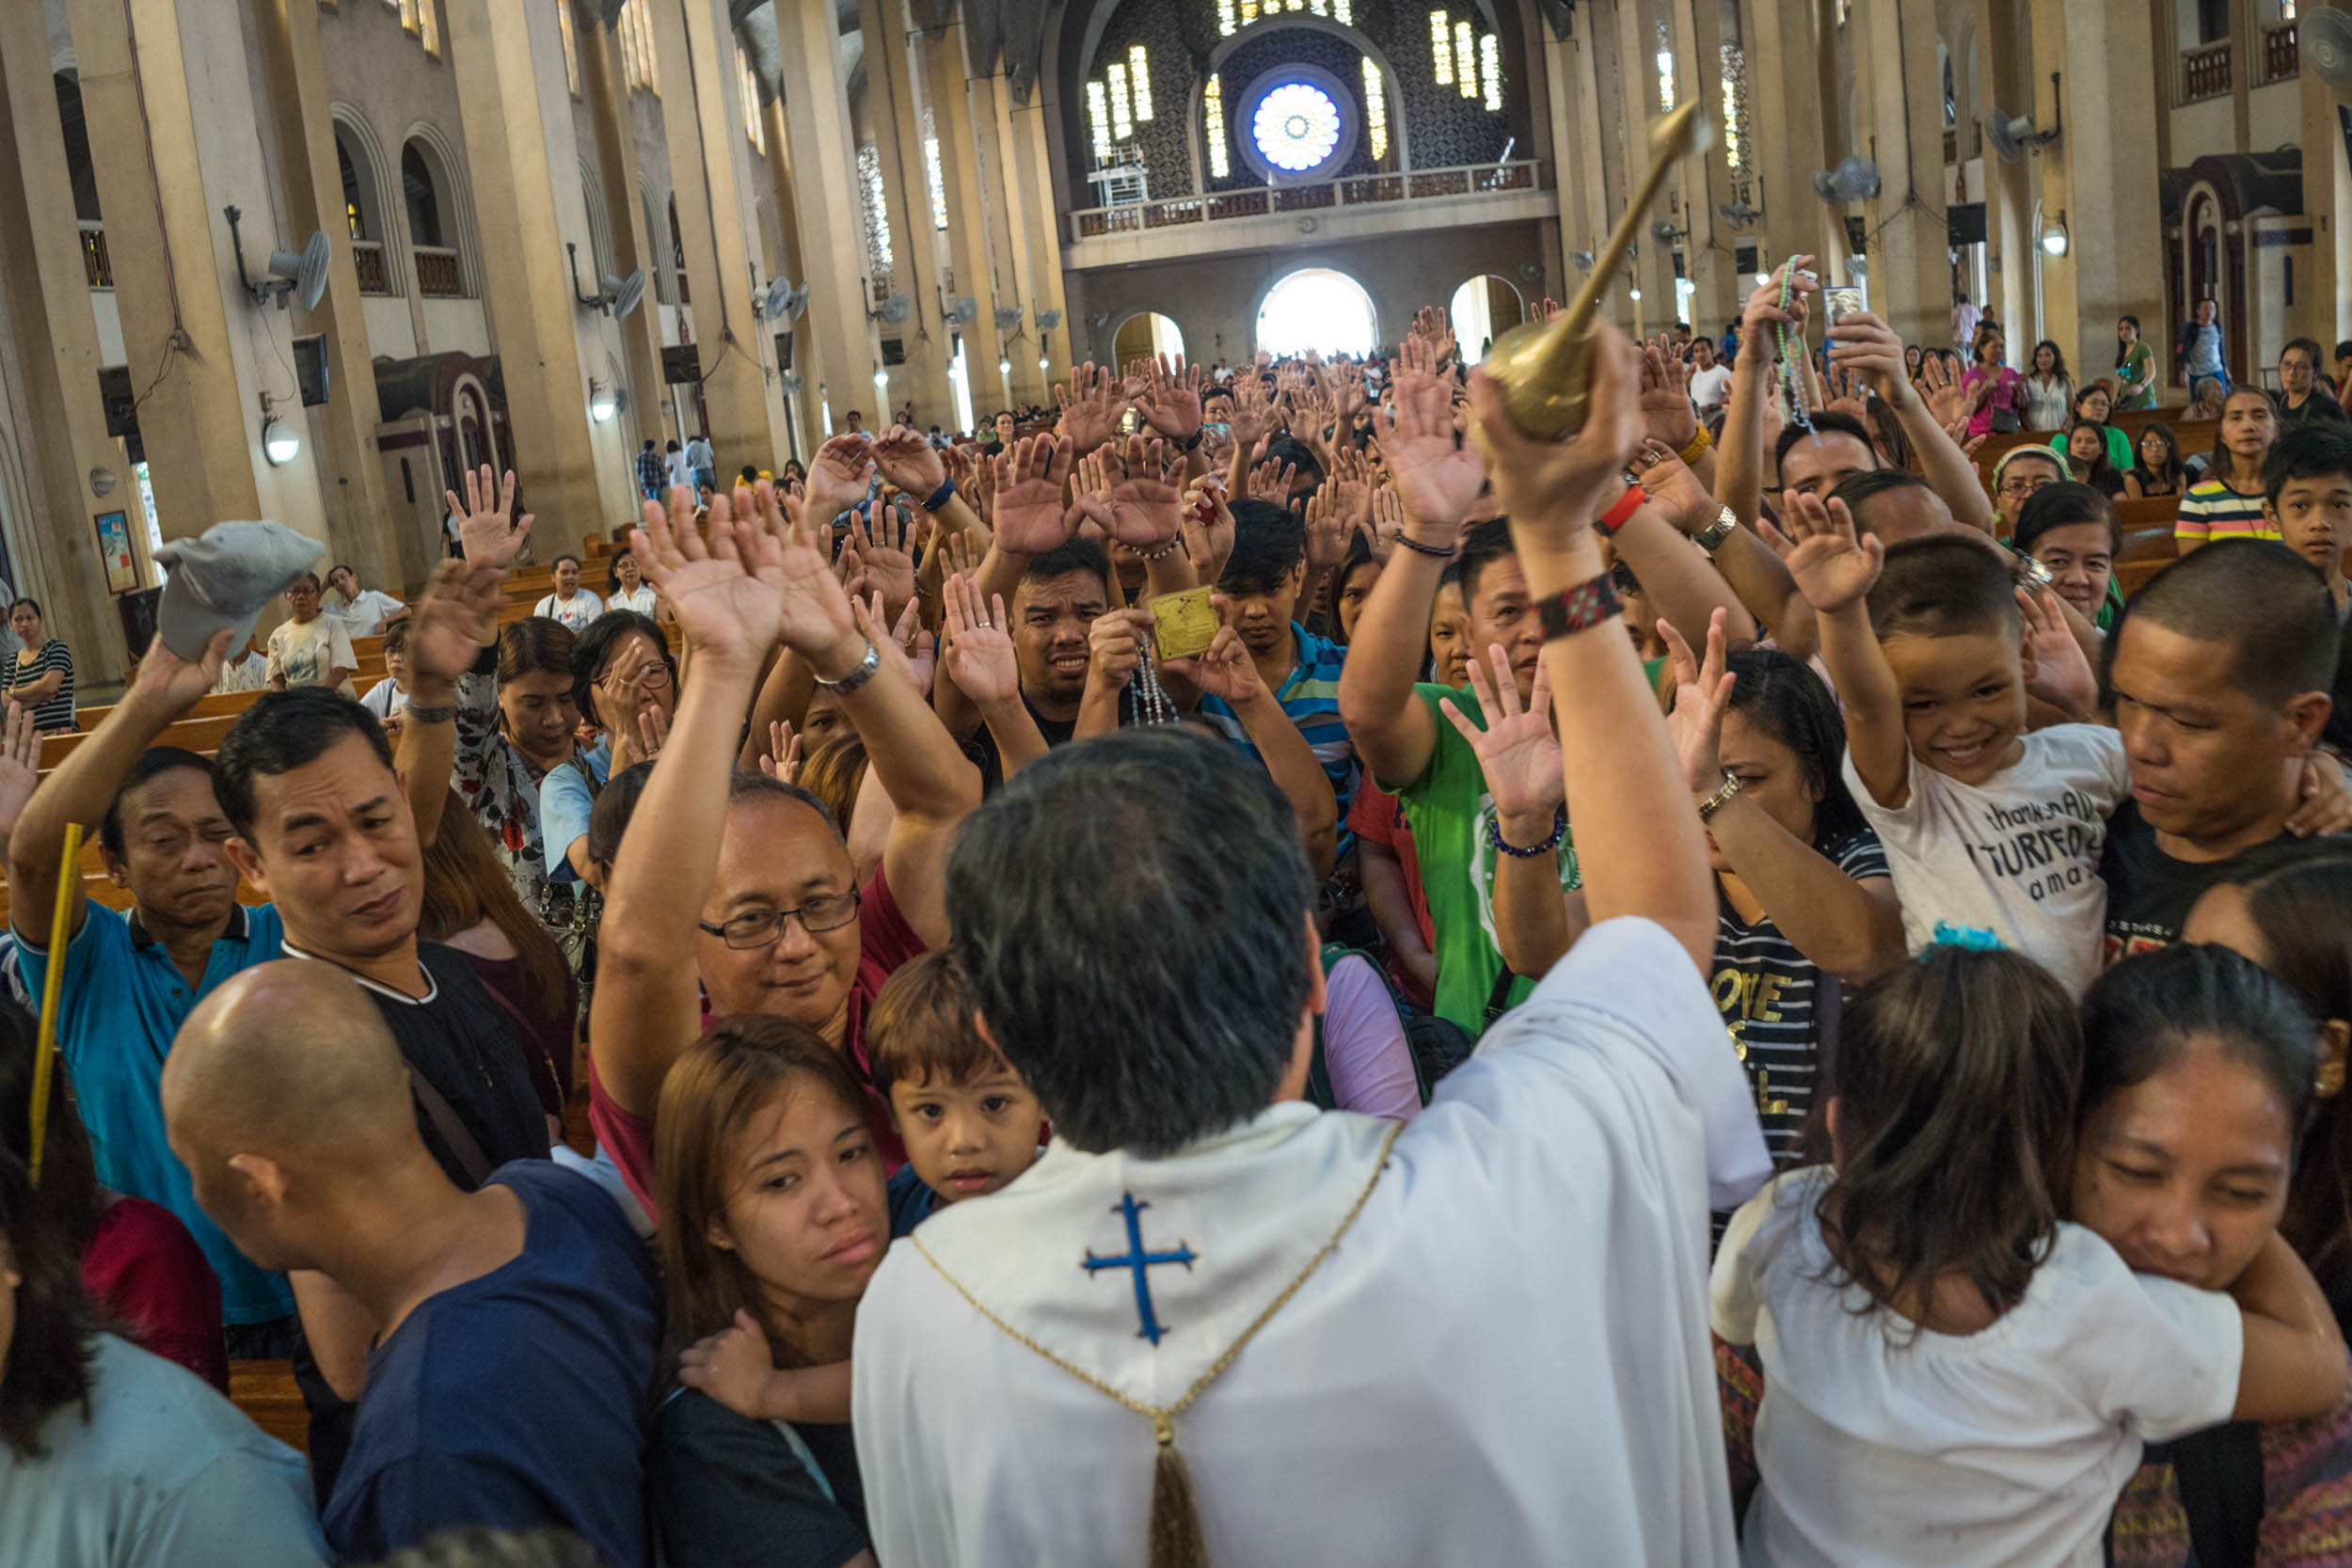 The National Shrine of Our Mother of Perpetual Help, in Baclaran, Manila, ministers to overseas Filipino